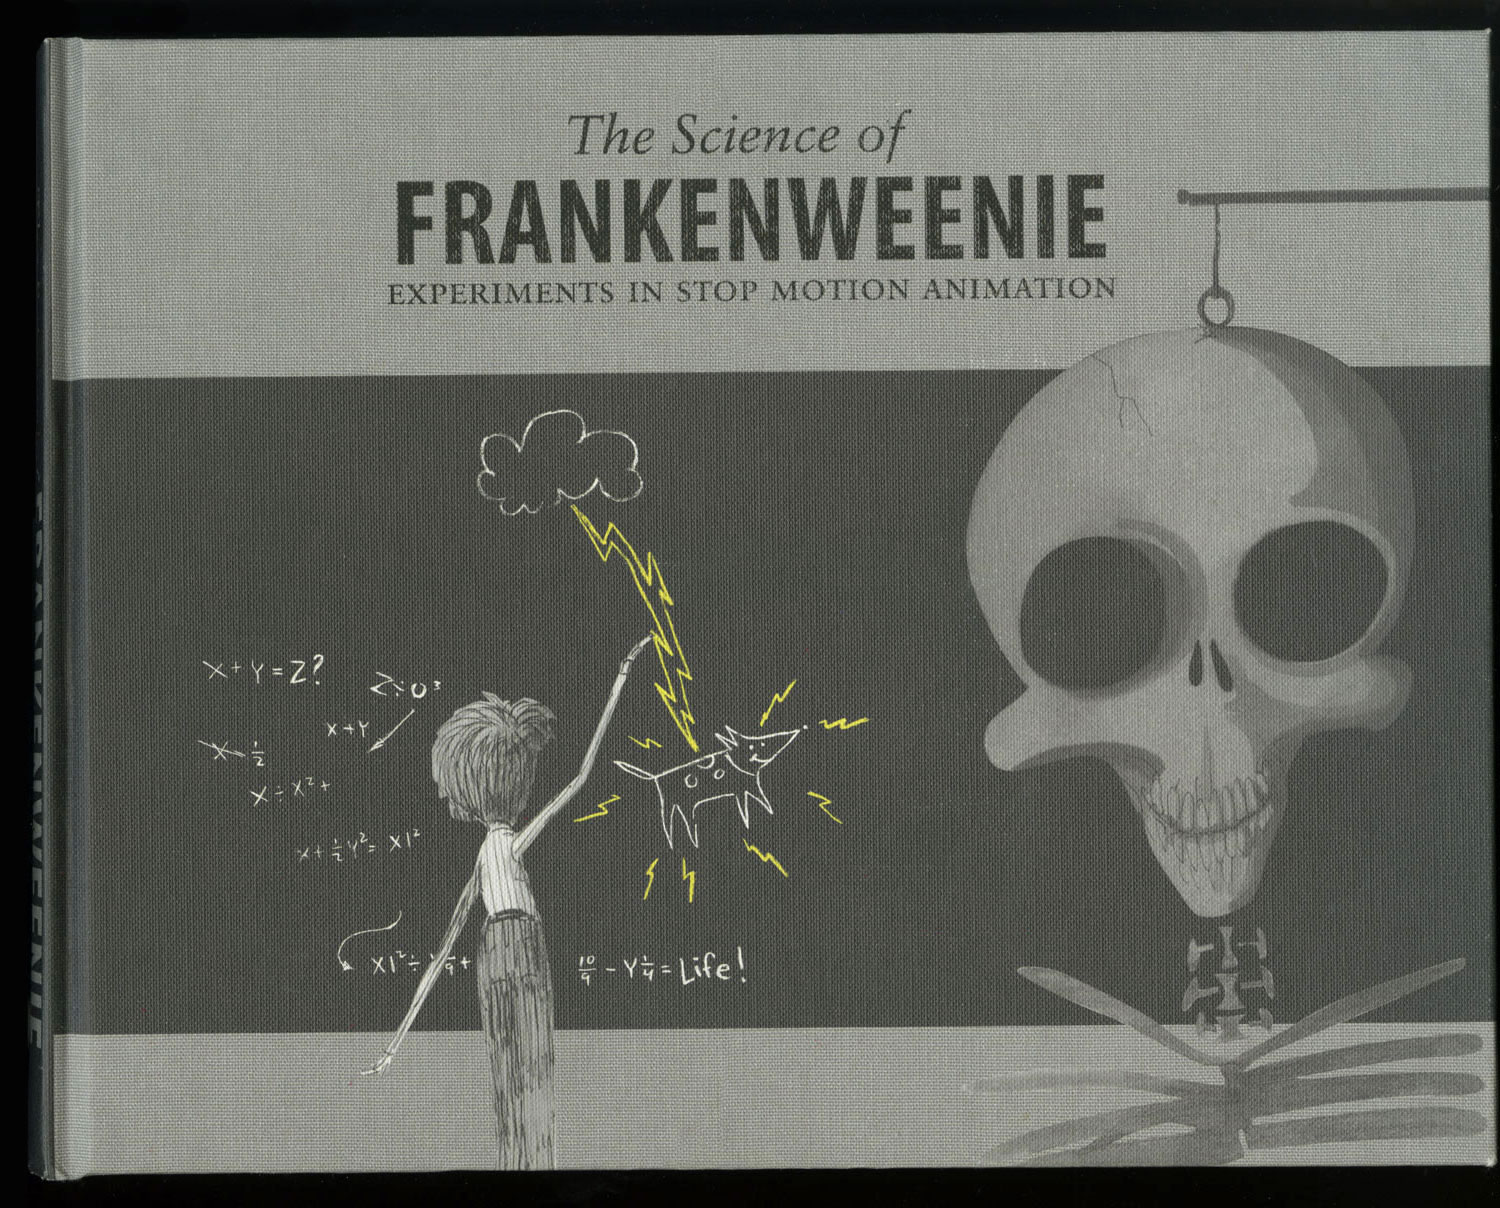 The Science of Frankenweenie: Experiments in Stop Motion Animation(A Cast & Crew Book) - Editor, PhotographerLimited Edition, © 2011 Disney Enterprises, Inc.Sample spreads here